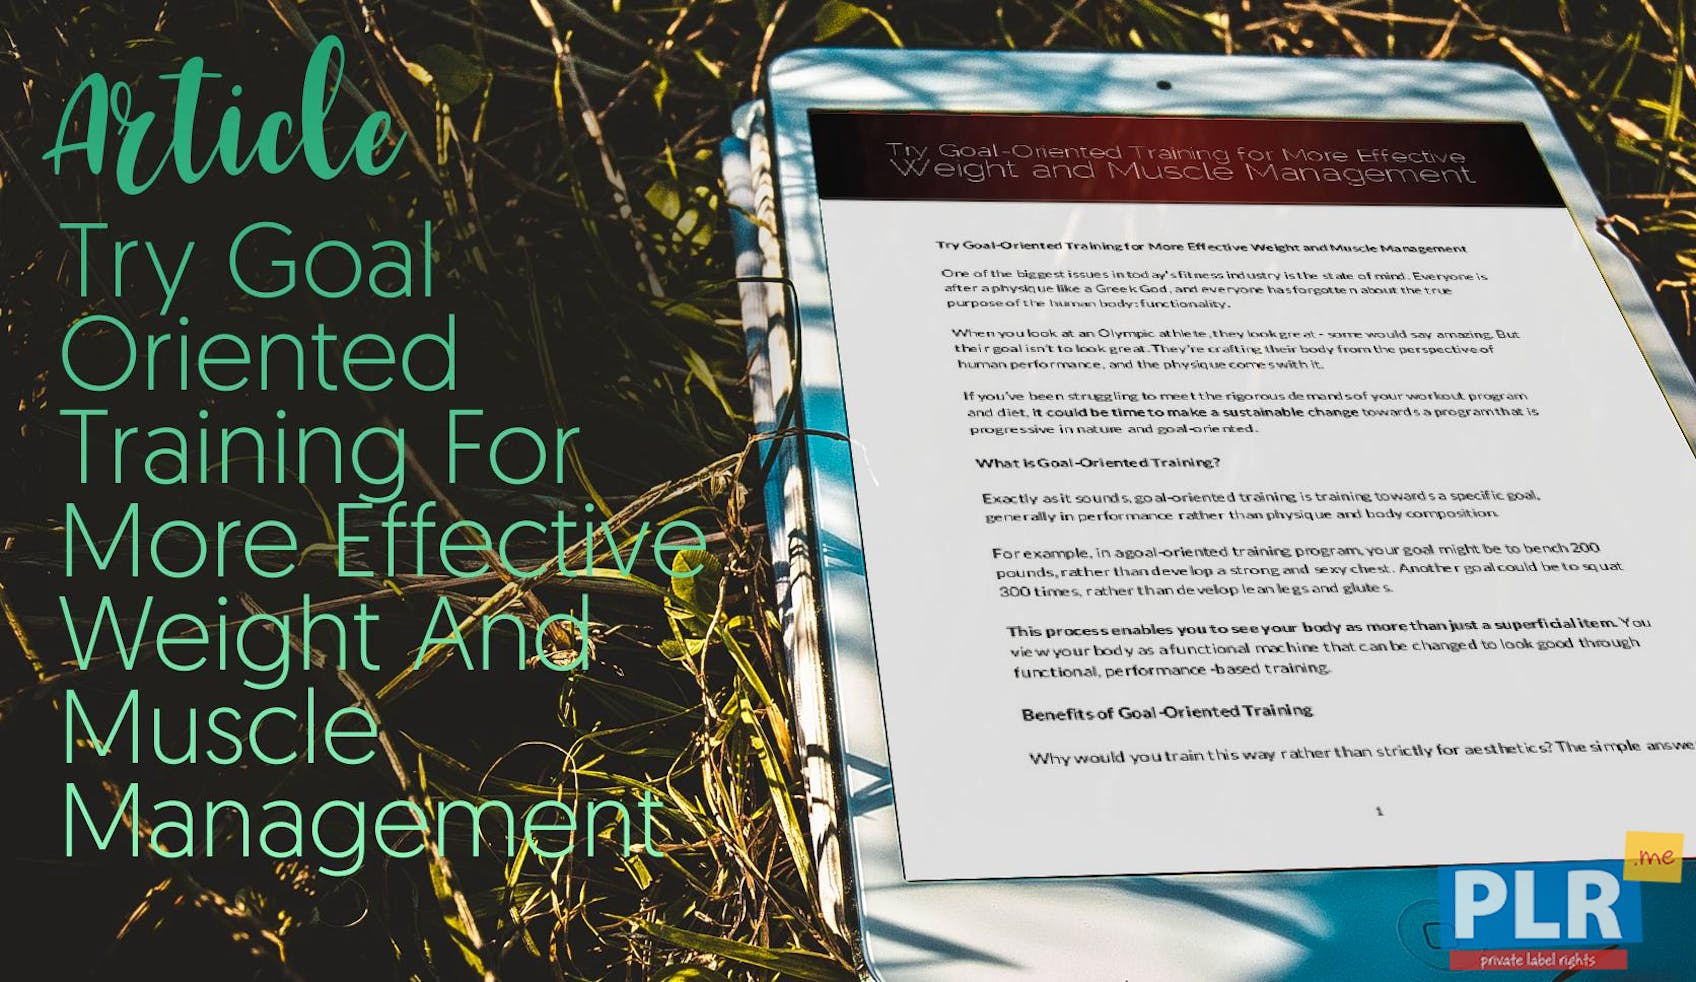 Plr Articles Blog Posts Try Goal Oriented Training For More